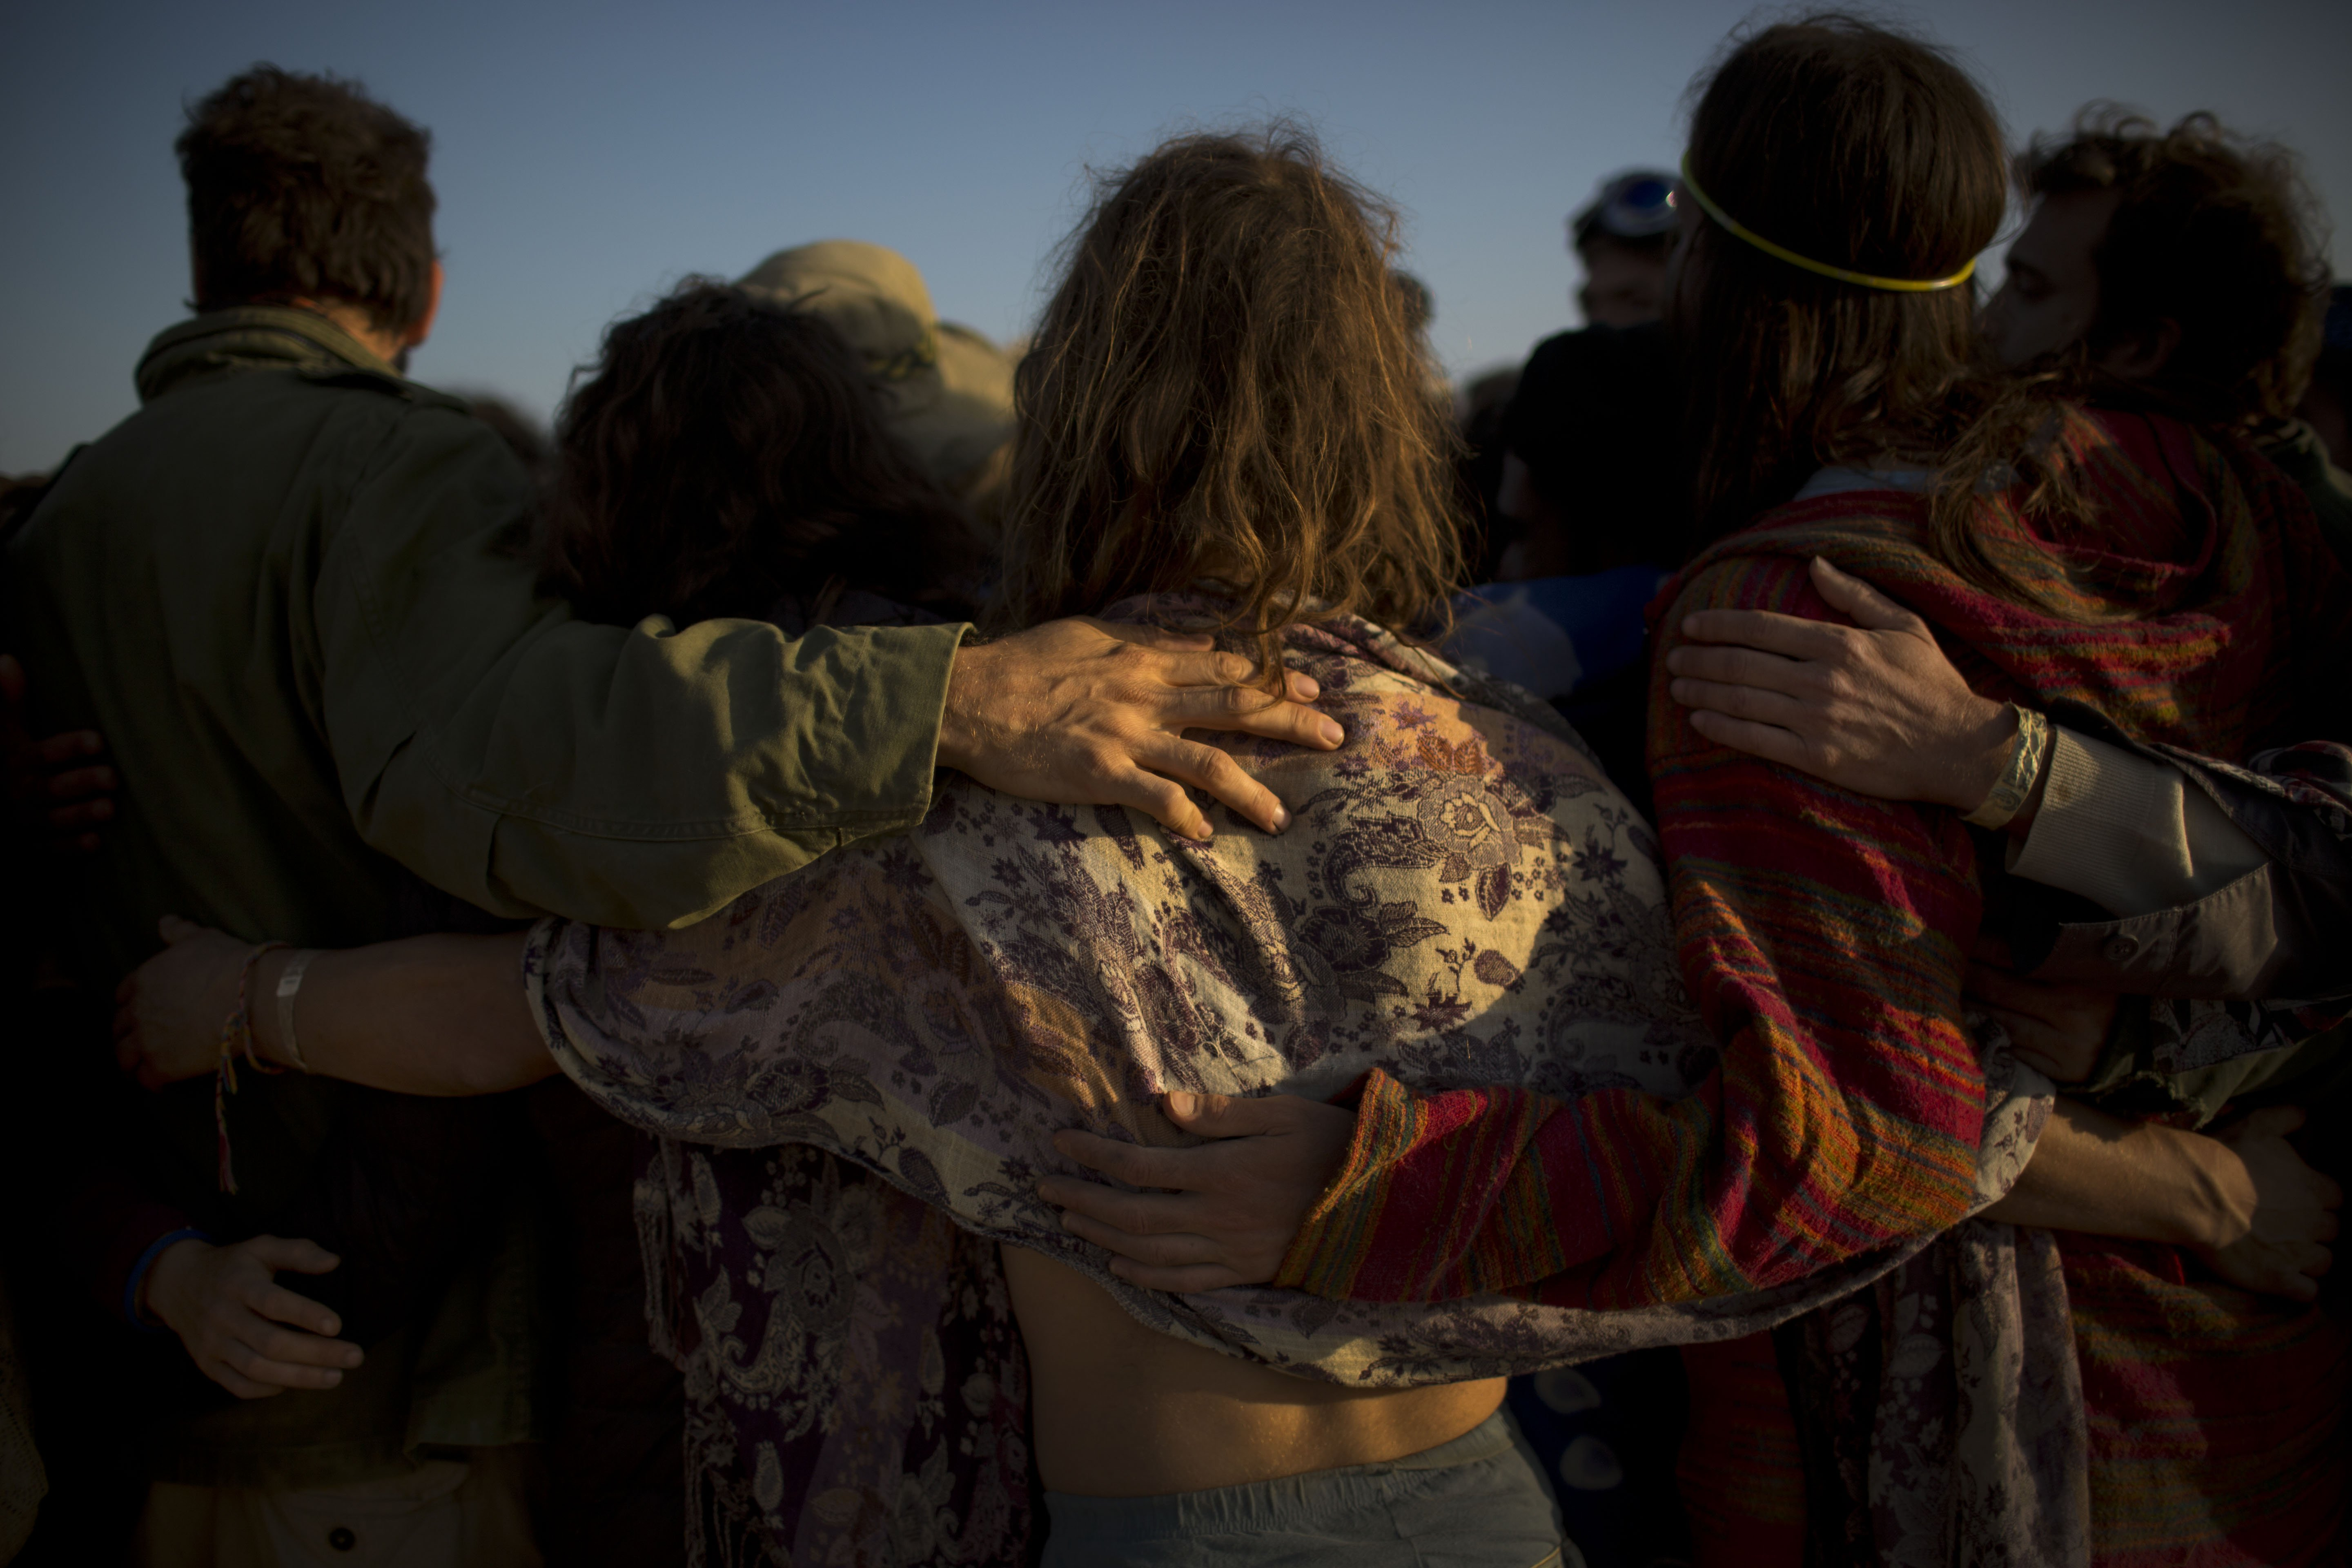 Israelis share a group hug after a wooden sculpture was set on fire at Israel''s first Midburn festival in the Negev Desert, Israel on June 7, 2014.